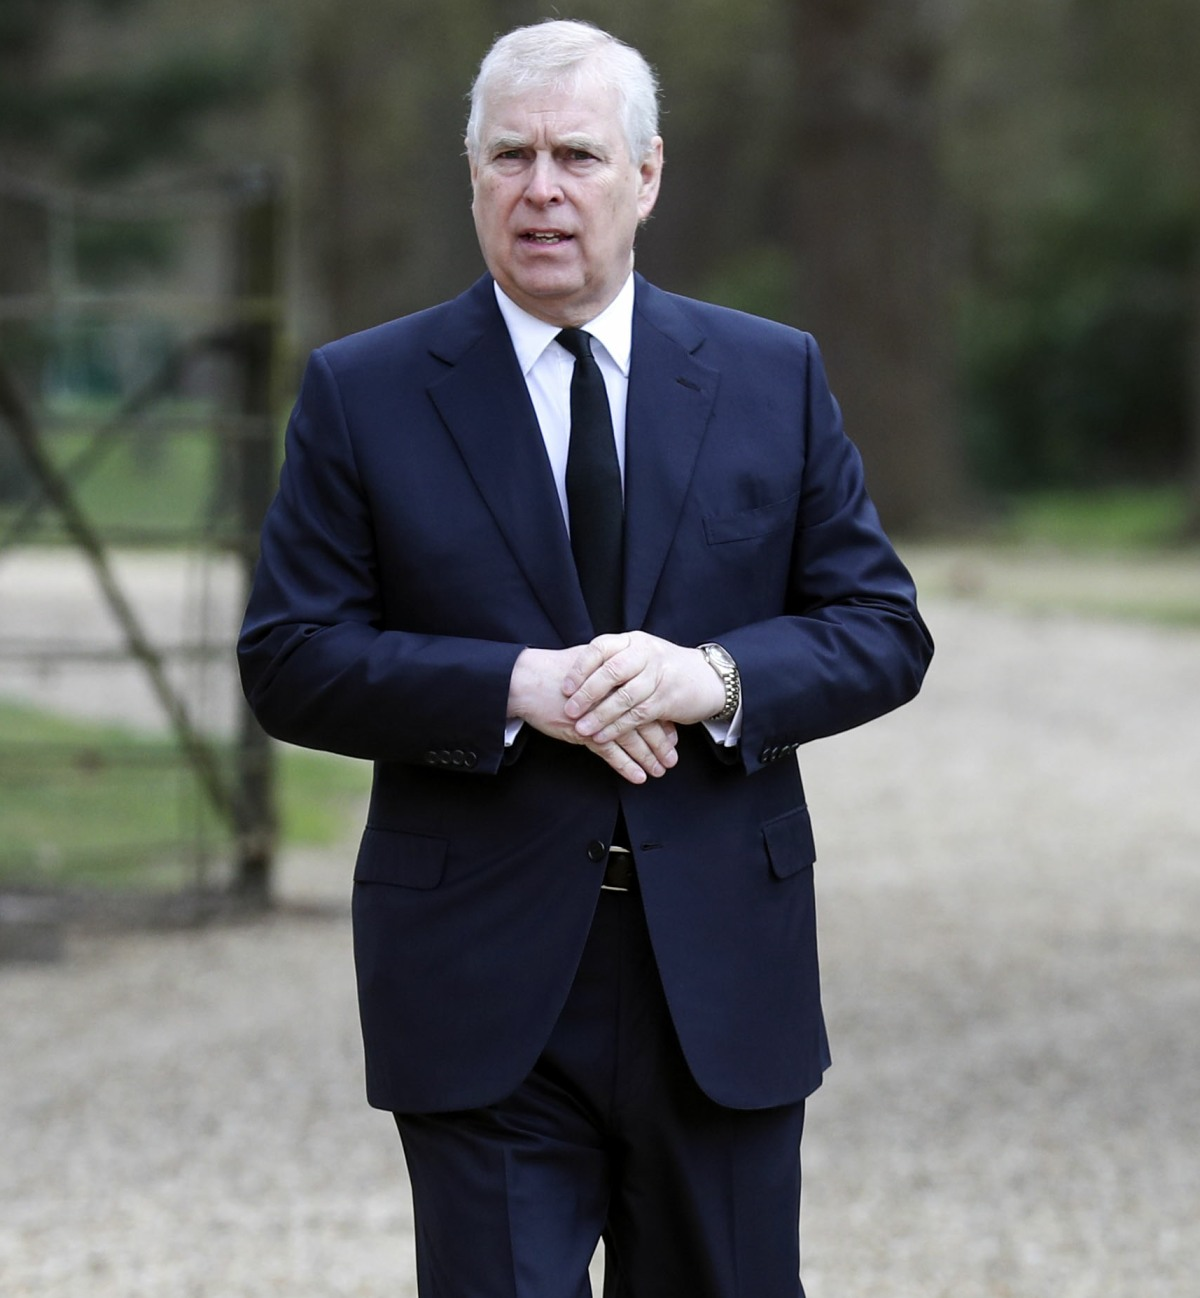 A British high court said that Prince Andrew was properly served by the Yanks